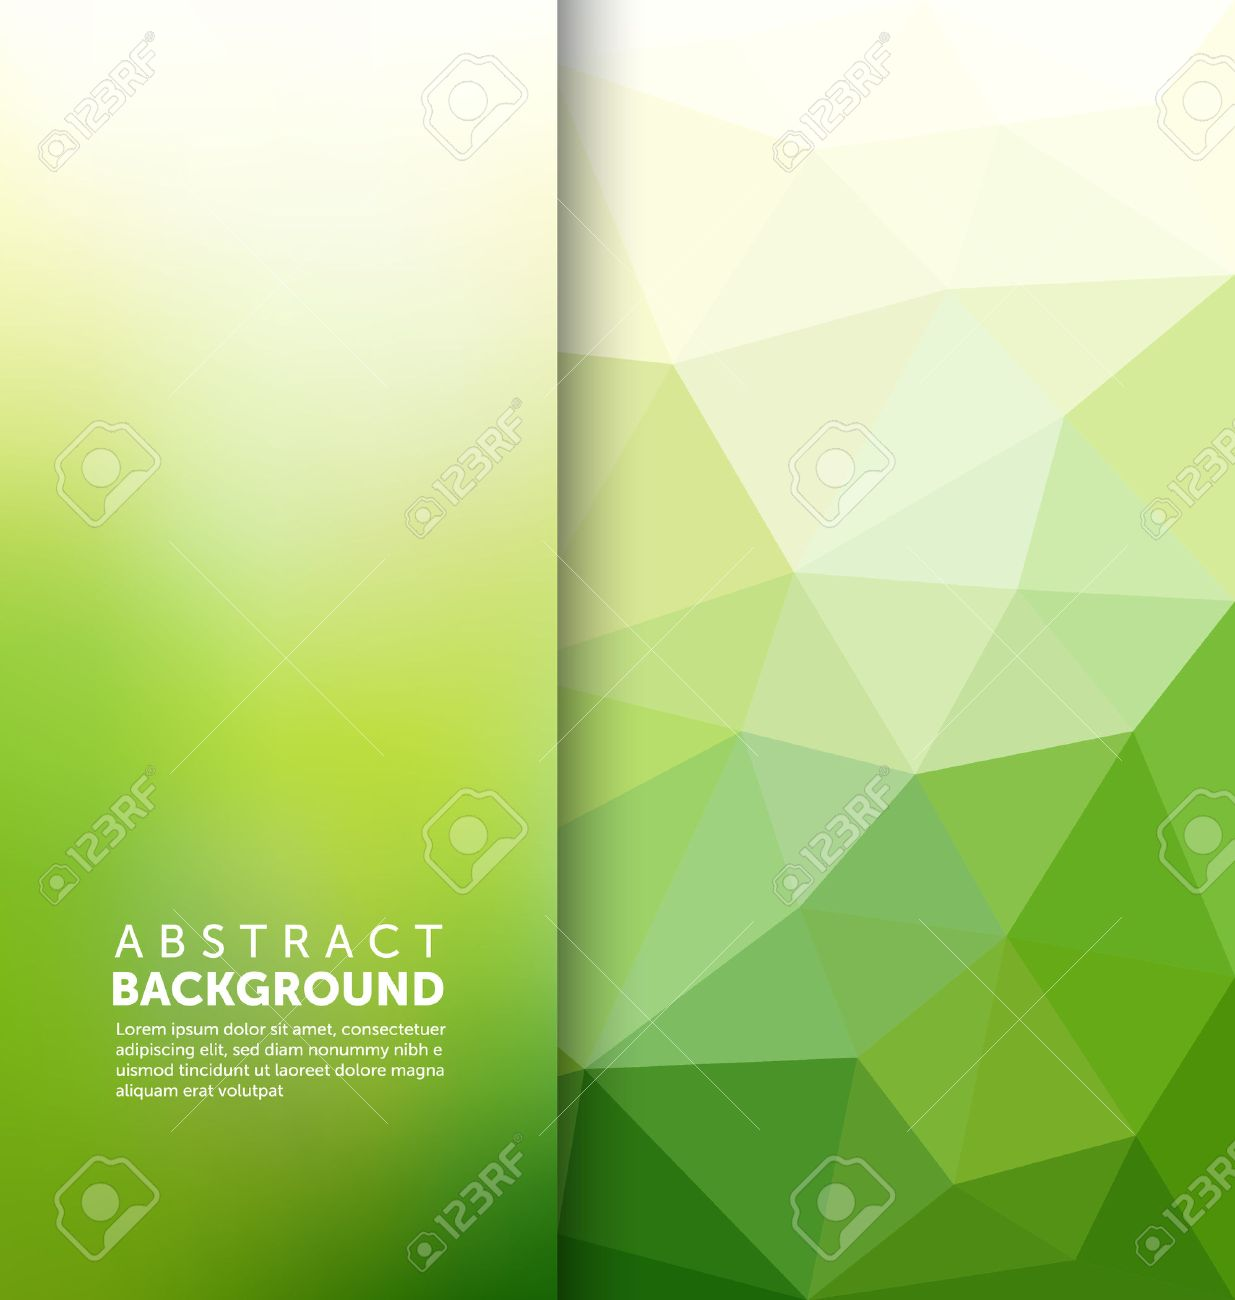 Abstract Background - Triangle and blurred banner design - 45168599